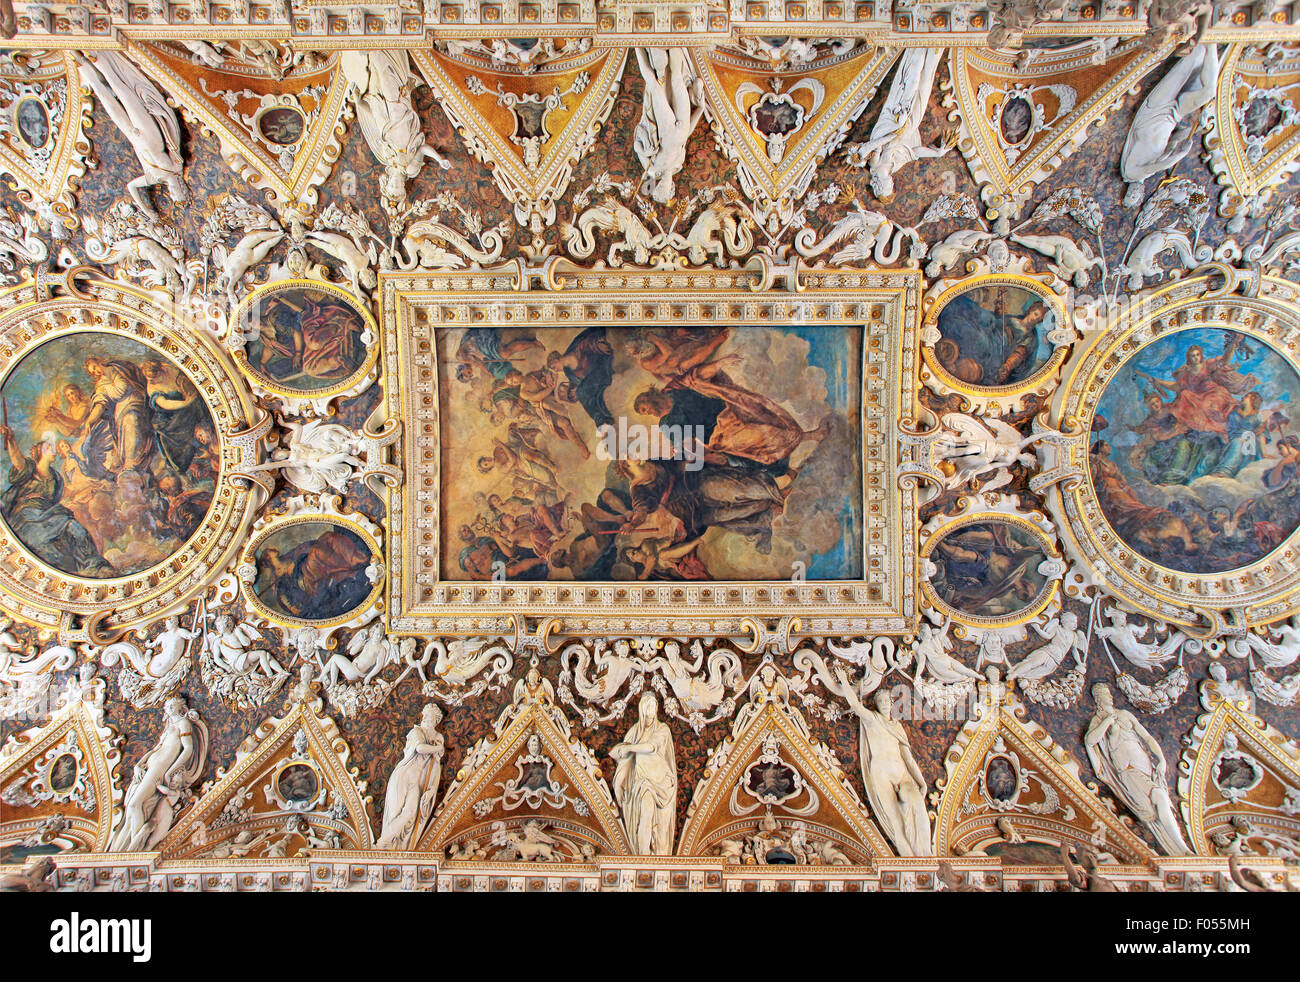 The Four Doors Room, a magnificent and detailed coffered ceiling with intricate stucco work in Doge Palace, including - Stock Image